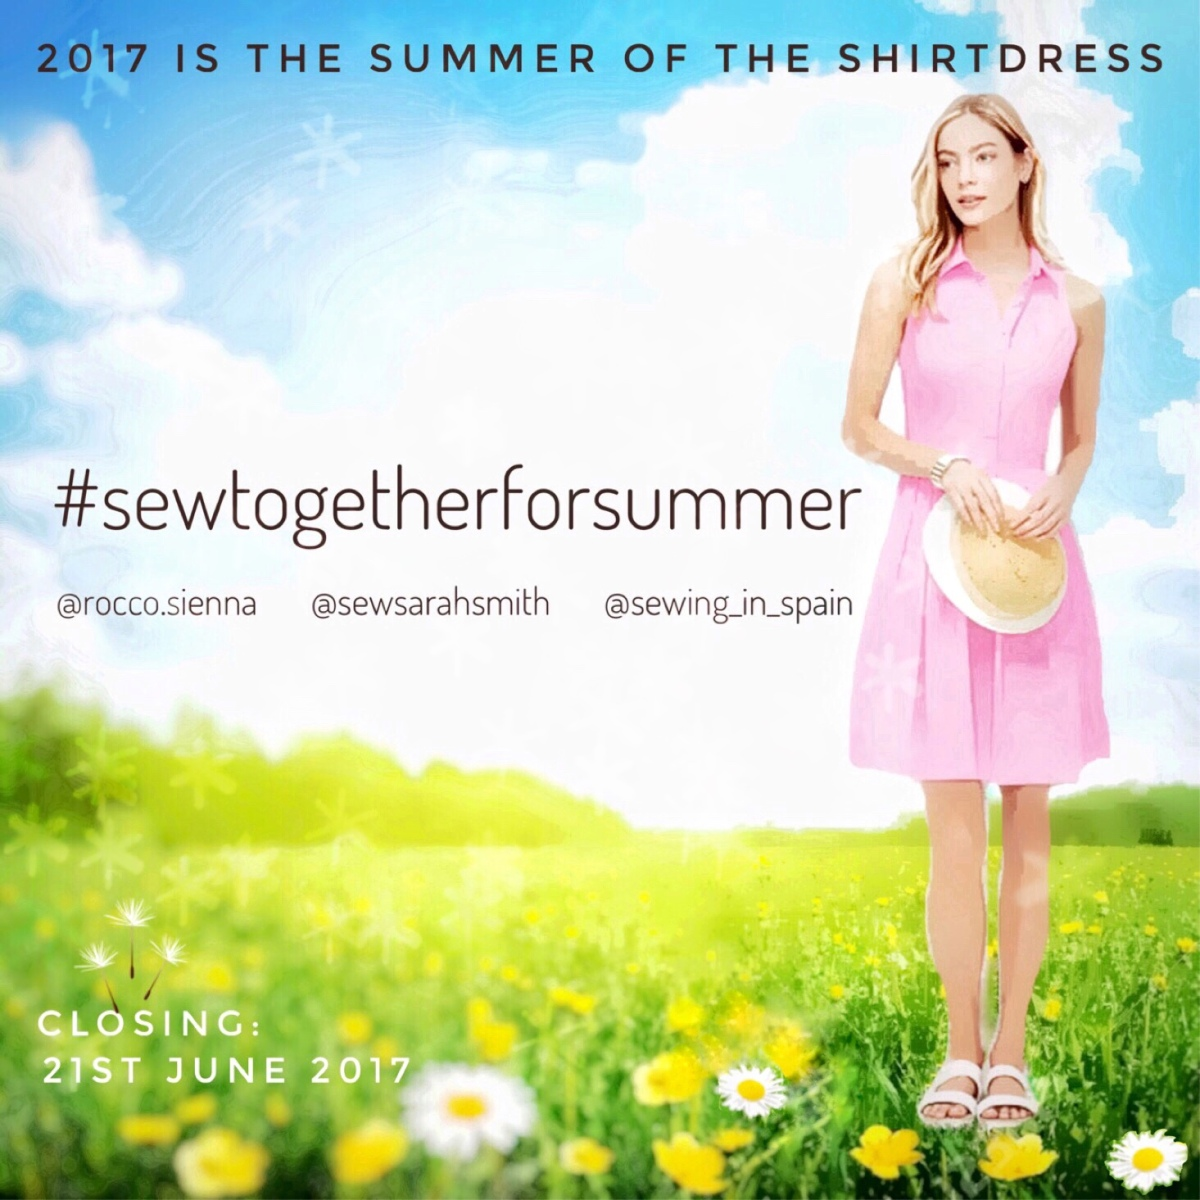 #sewtogetherforsummer 2017 - it's the Summer of the Shirtdress!